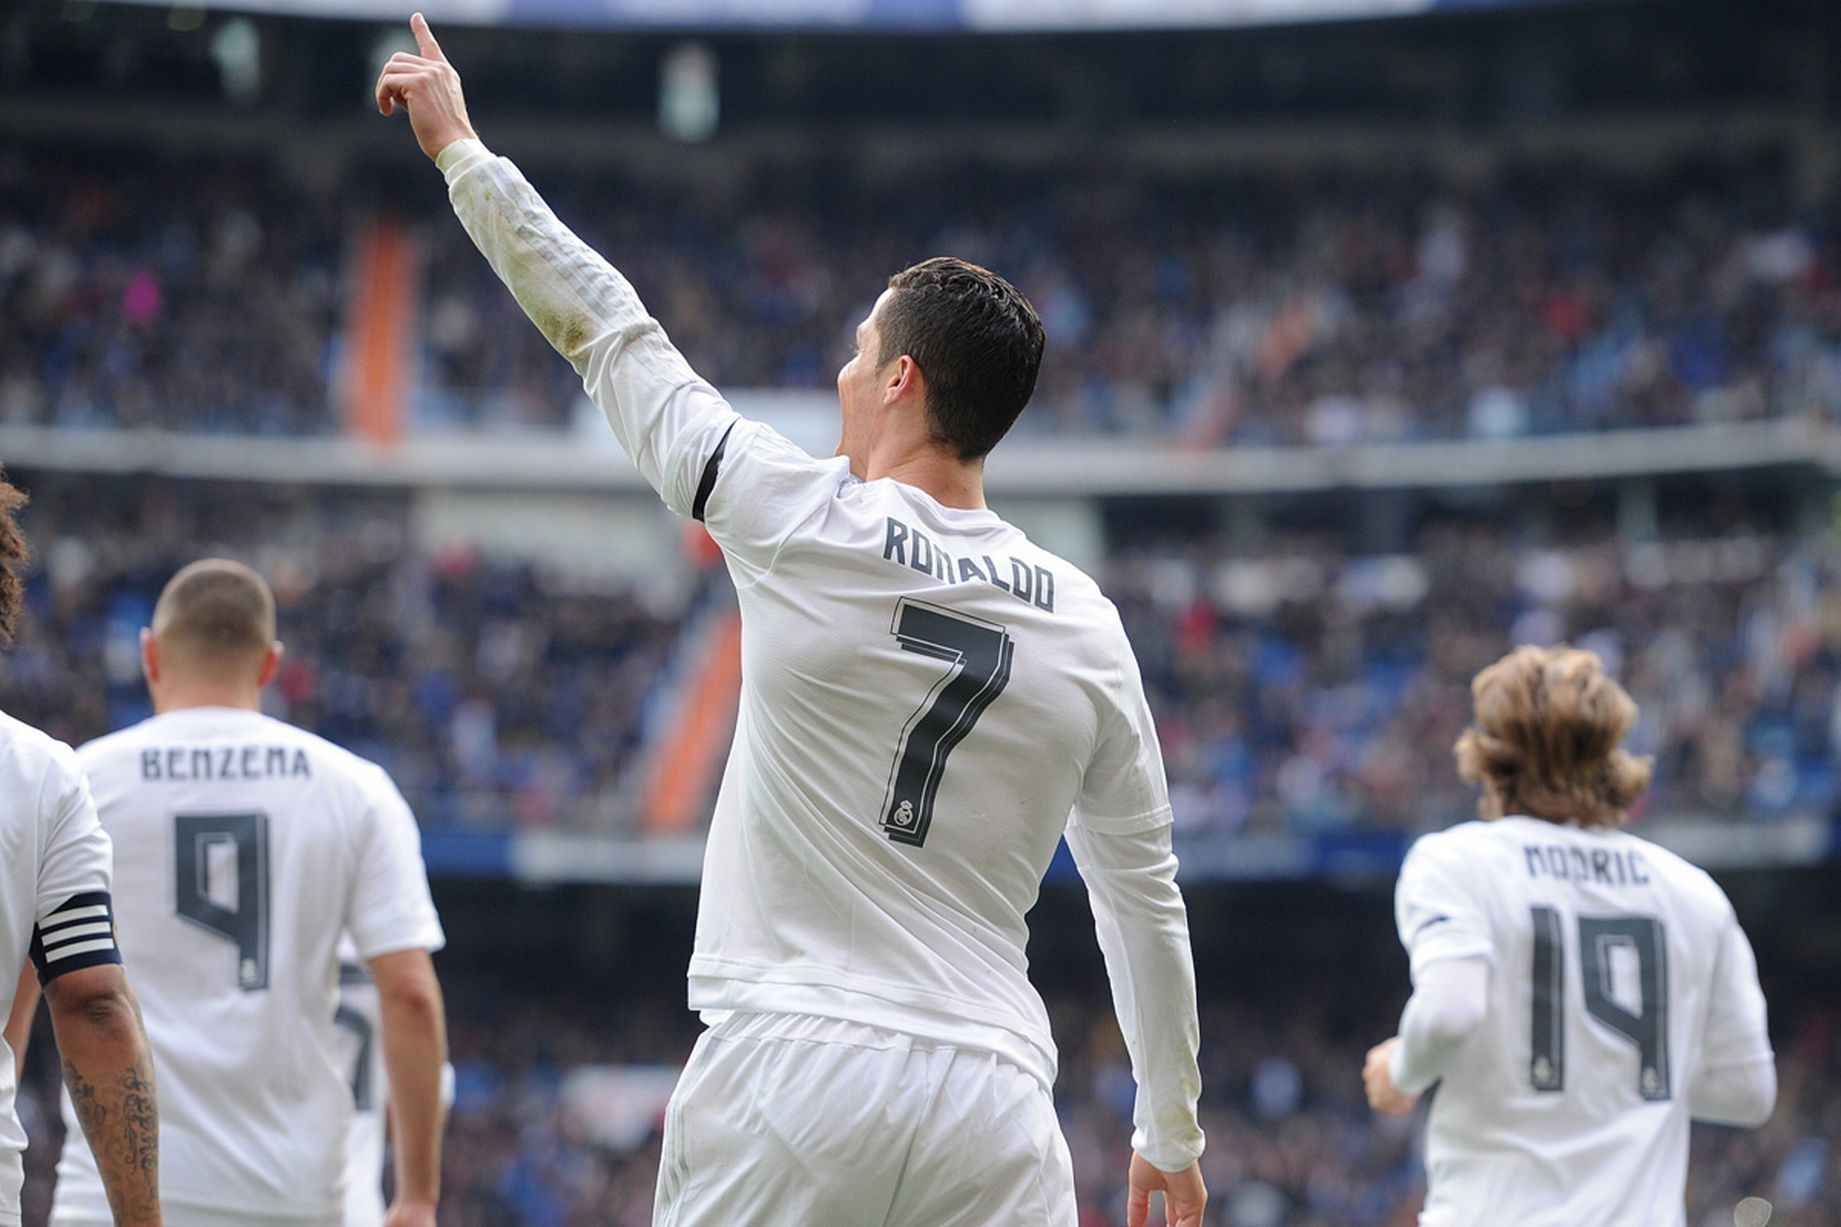 Real Madrid and the 10 Most Valuable Soccer Teams of 2016